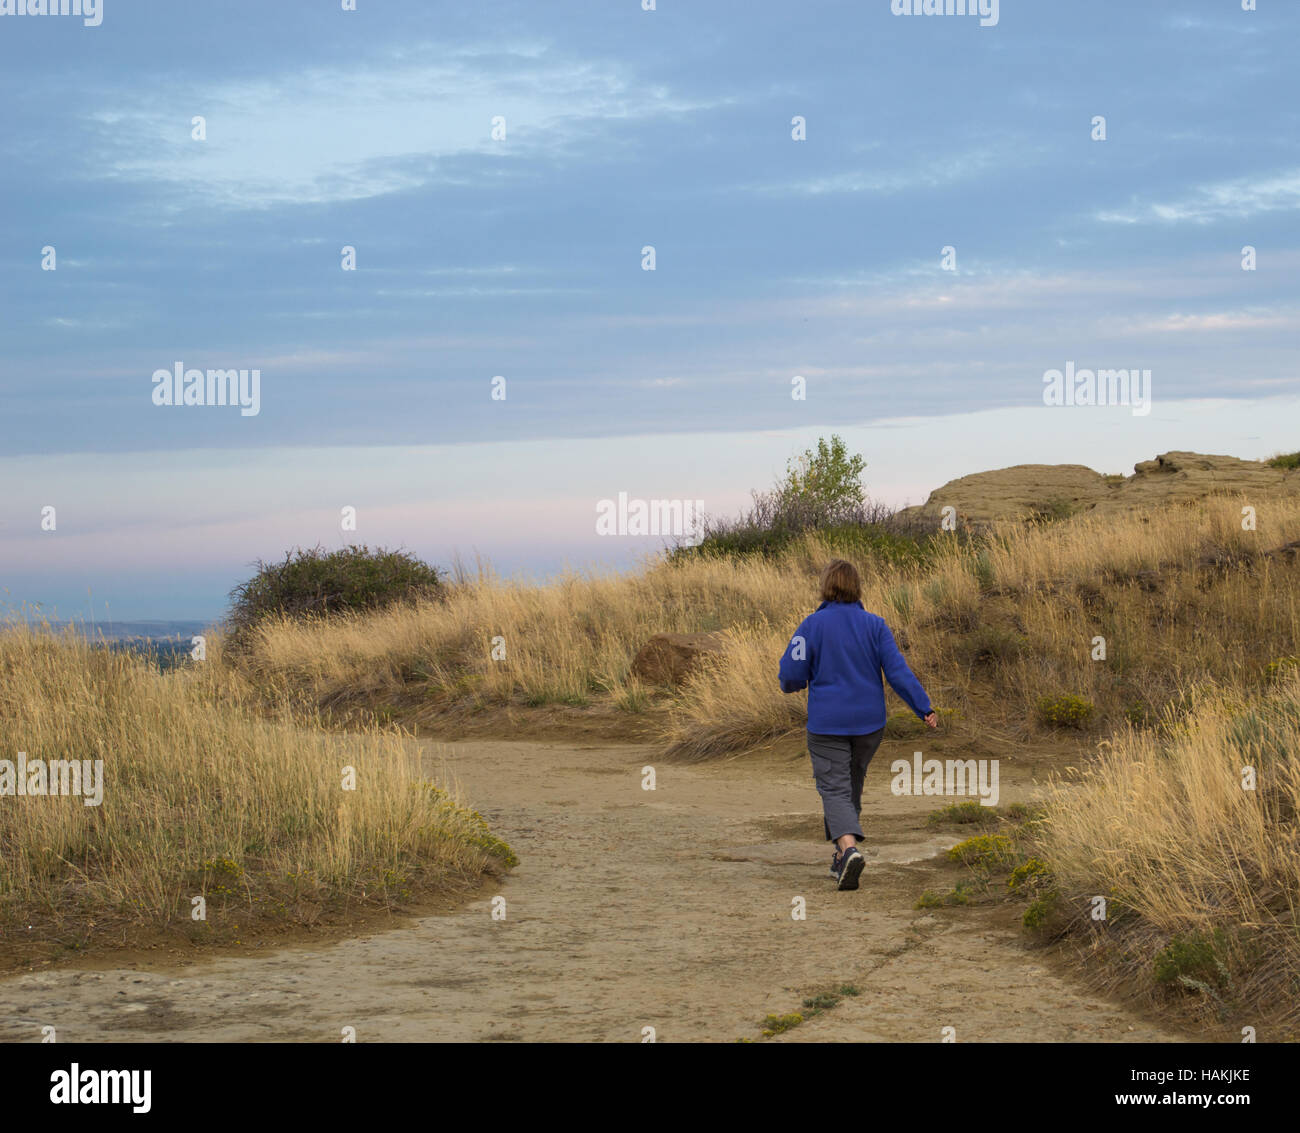 A woman in cornflower blue jacket with back to camera walking briskly on grass-lined trail toward sandstone boulders - Stock Image